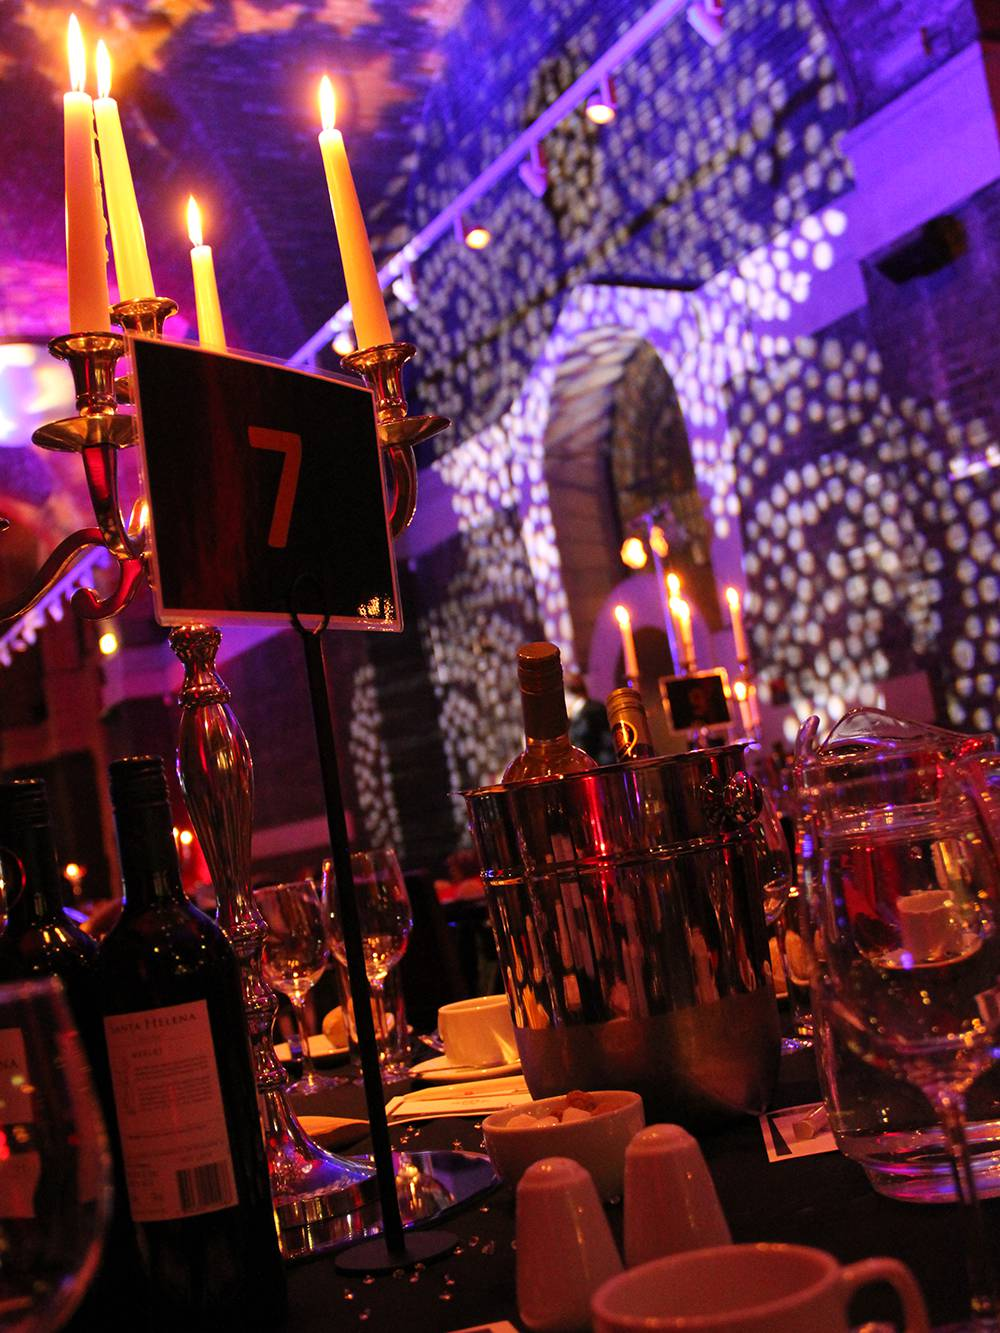 Themed lighting for a gala dinner at Liverpool Cathedral.